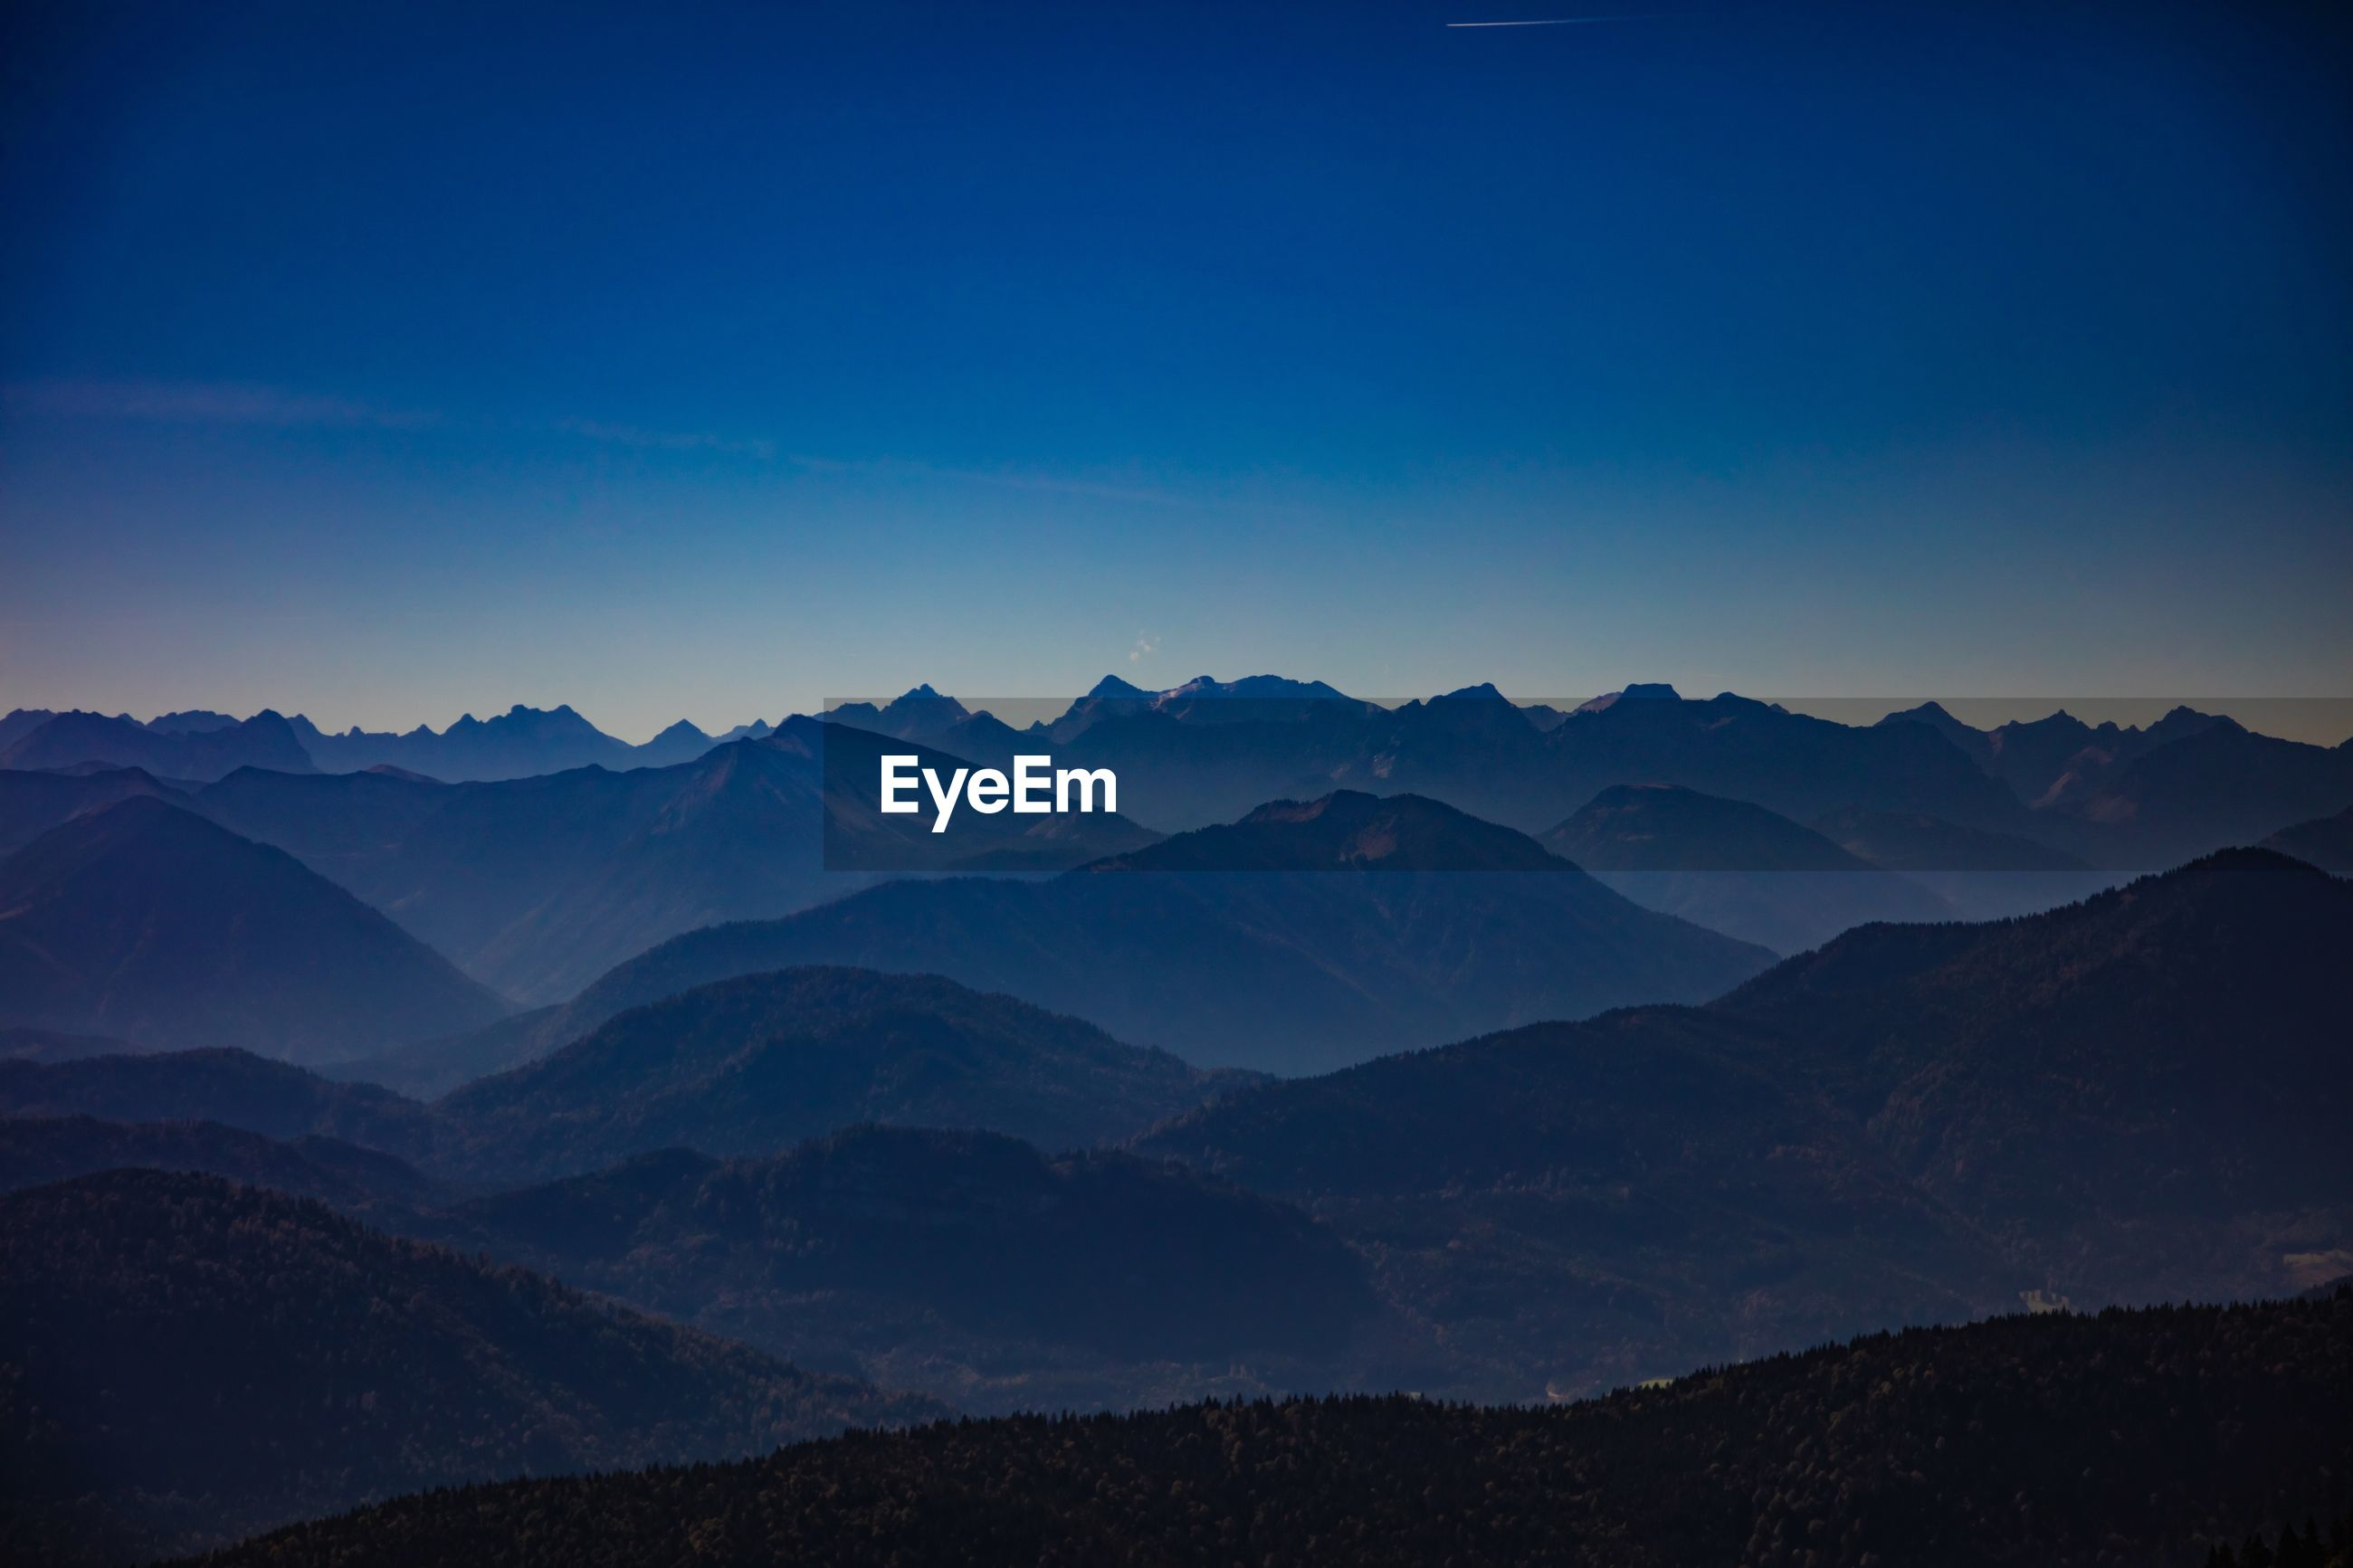 SCENIC VIEW OF MOUNTAIN RANGE AGAINST CLEAR BLUE SKY